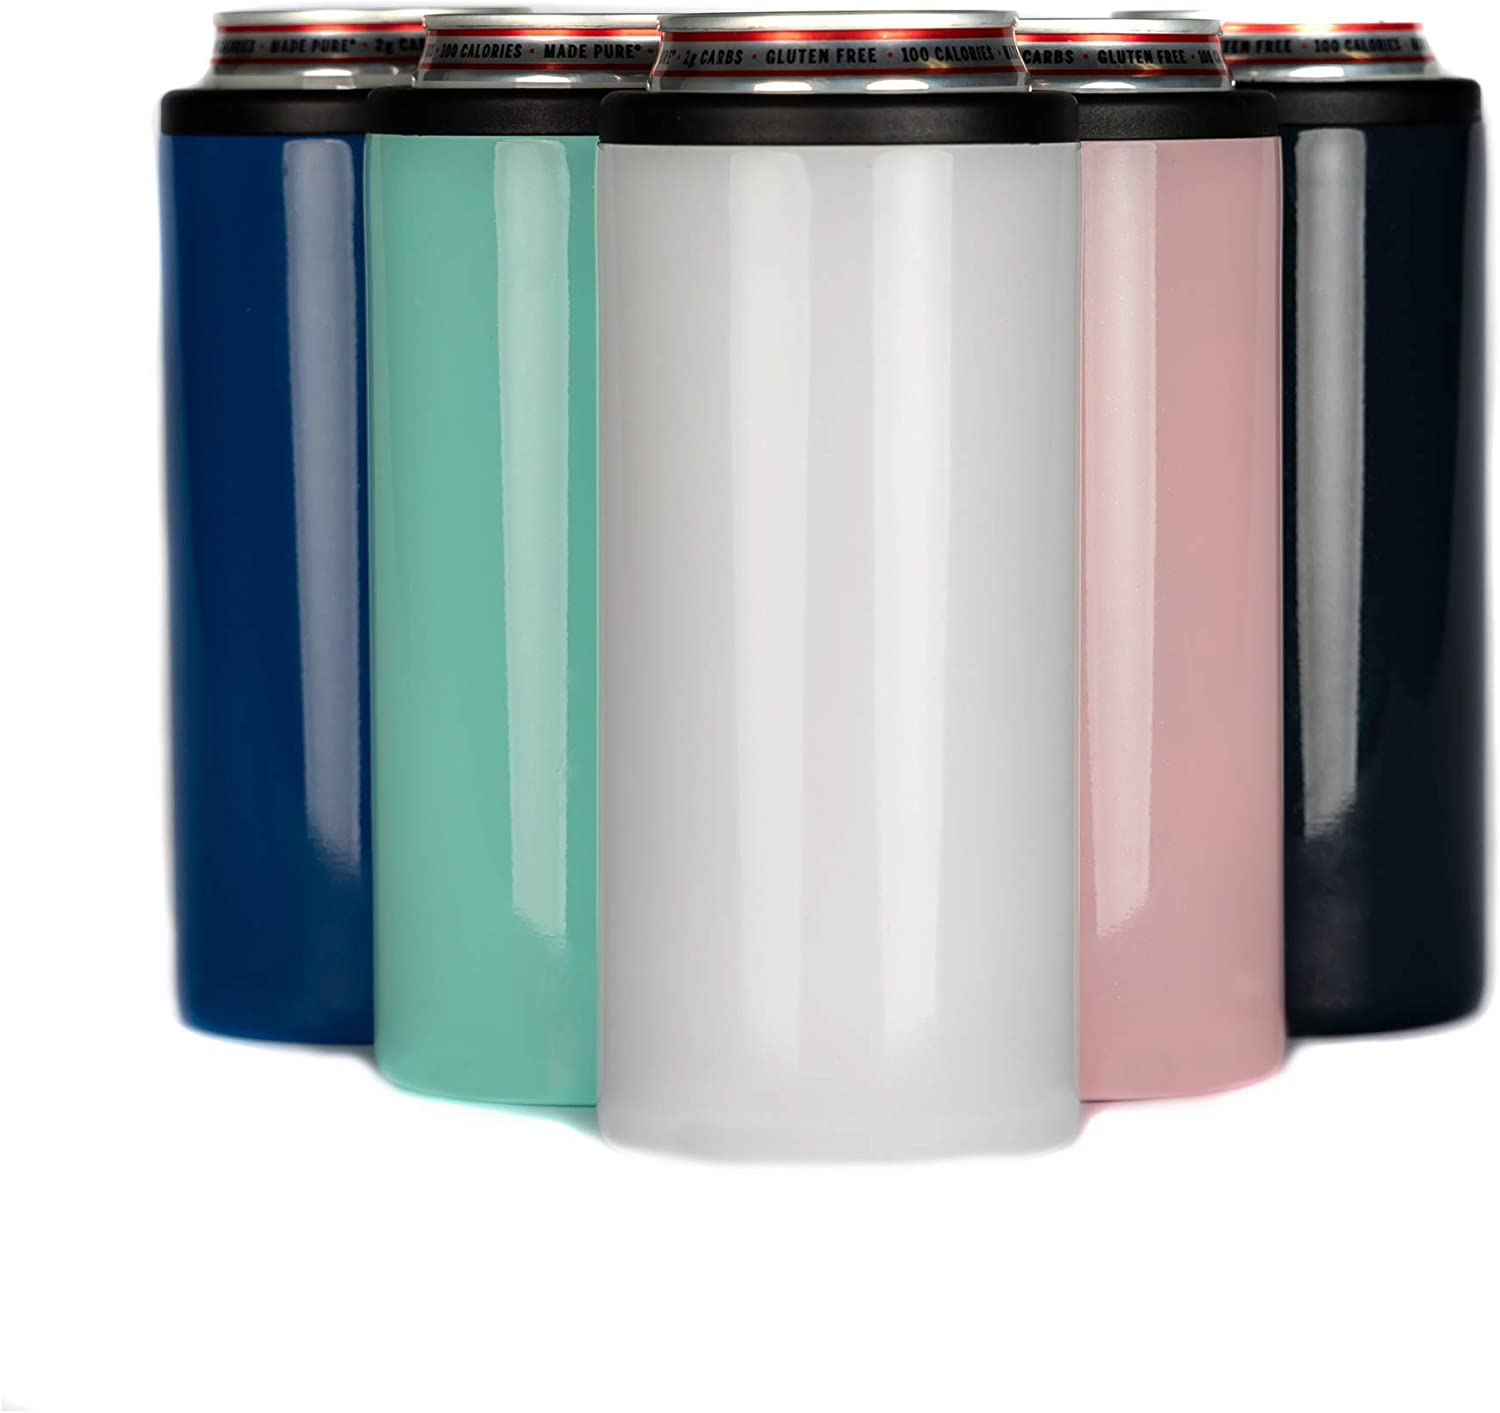 Klarny 12 oz Slim Can Cooler for Hard Seltzer & Slim Beer Double Walled Stainless Steel Insulated Coozie Skinny Beer Soda Energy Drink Holder